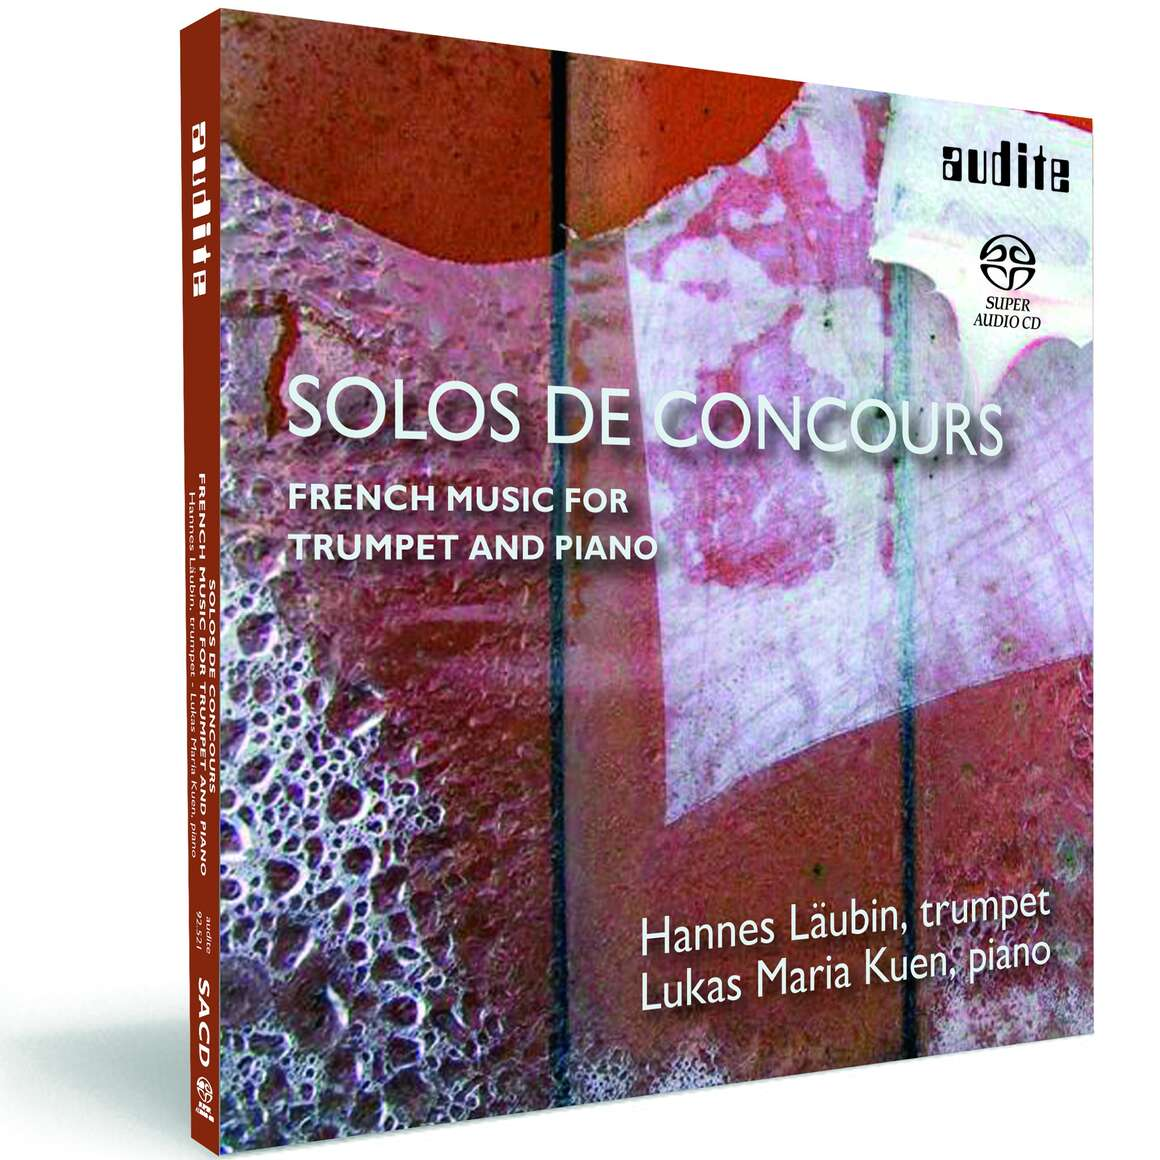 Solos de Concours - French Music for Trumpet and Piano